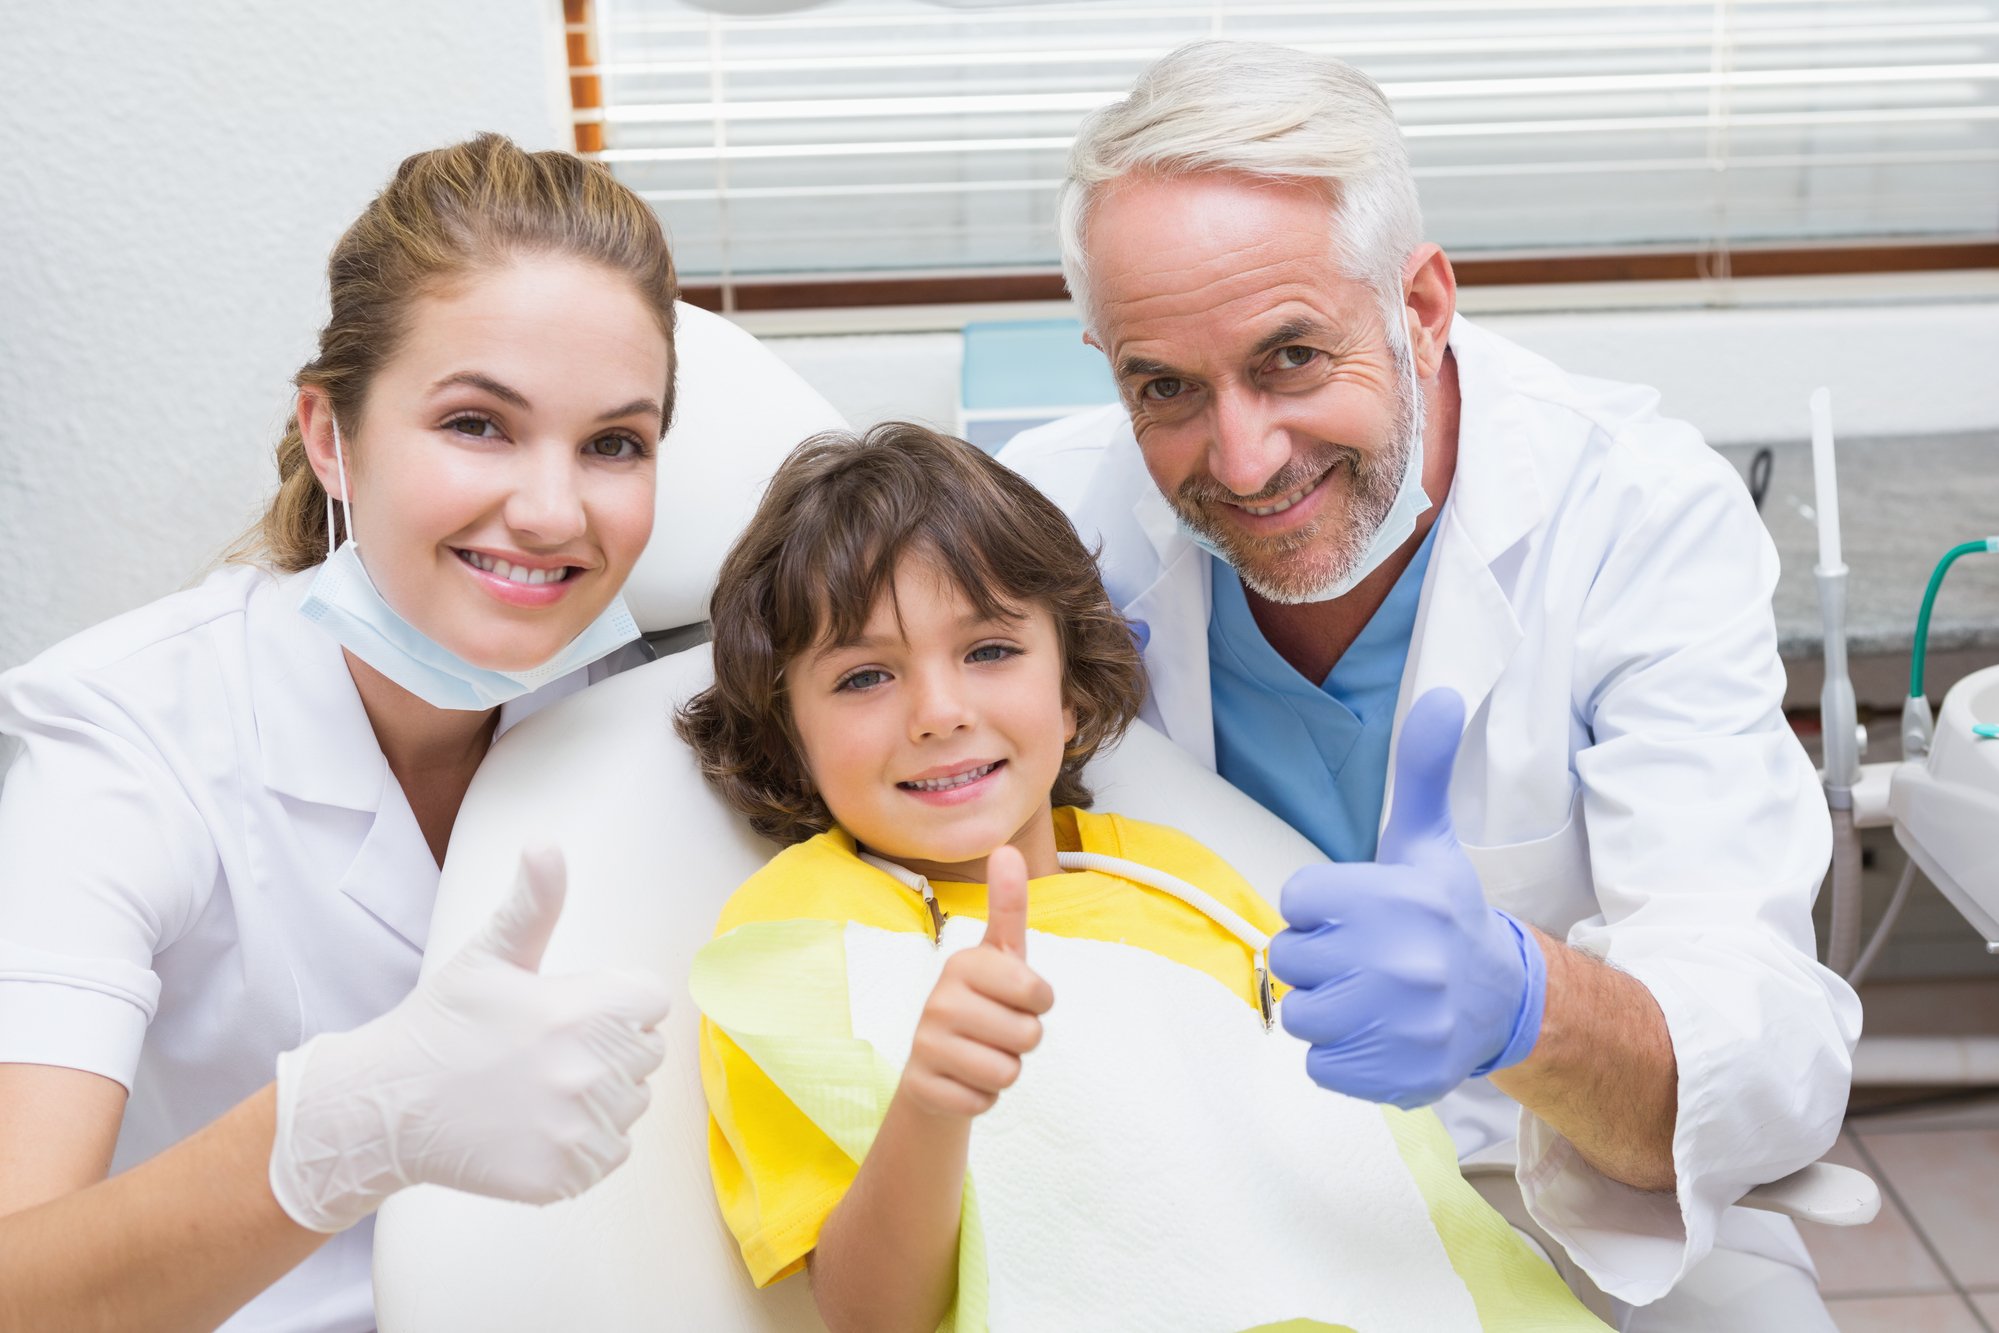 Pediatric dentist assistant and little boy all smiling at camera with thumbs up at the dental clinic